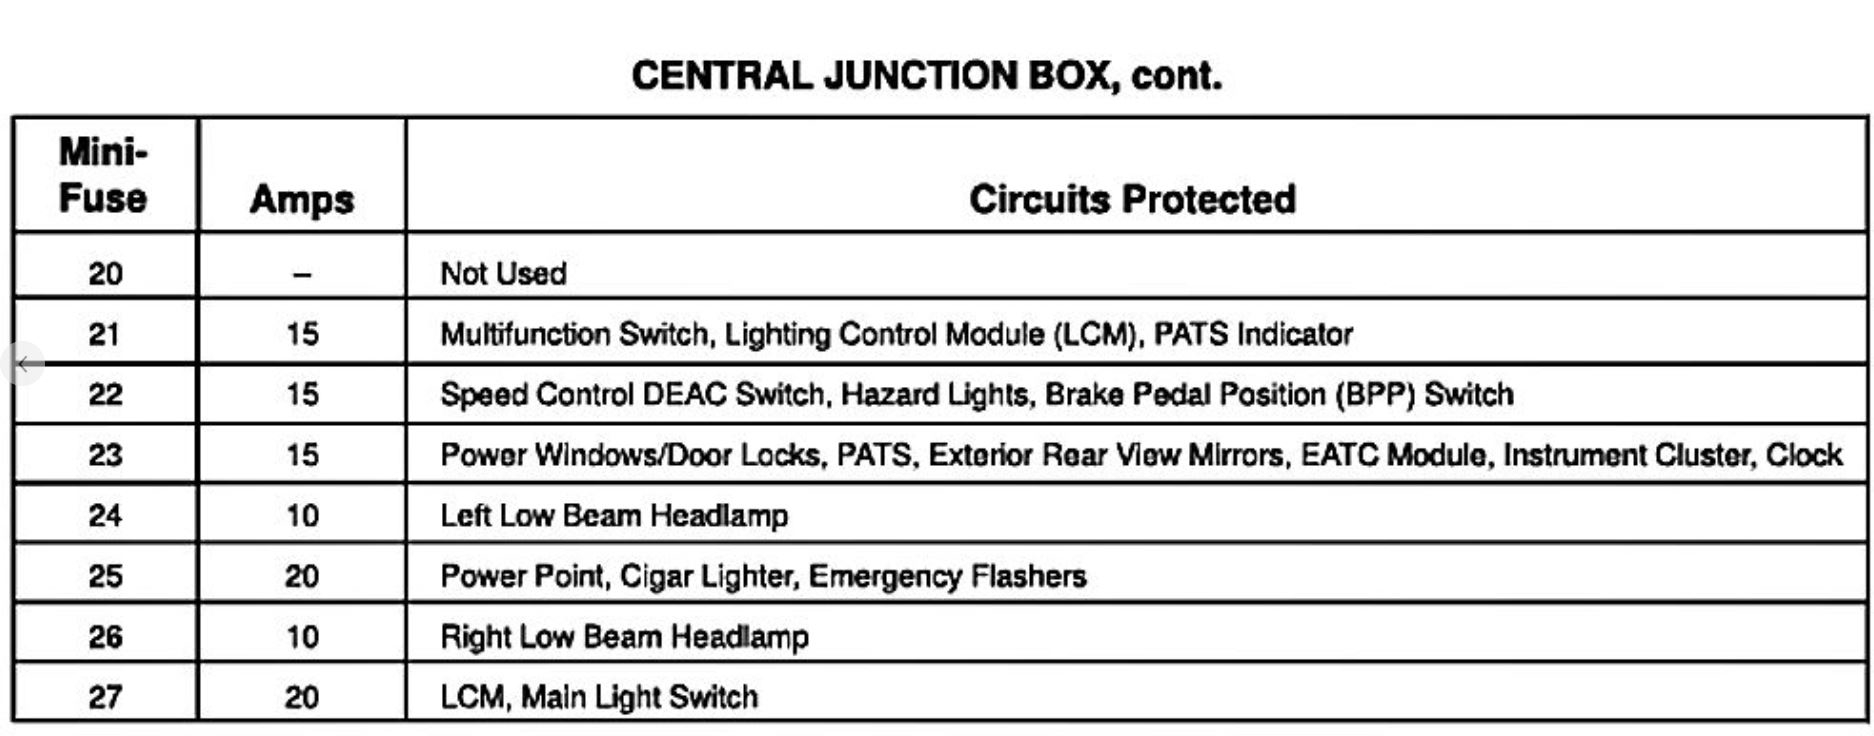 95 Ford Crown Victoria Fuse Box Diagram Get Free Image About Wiring